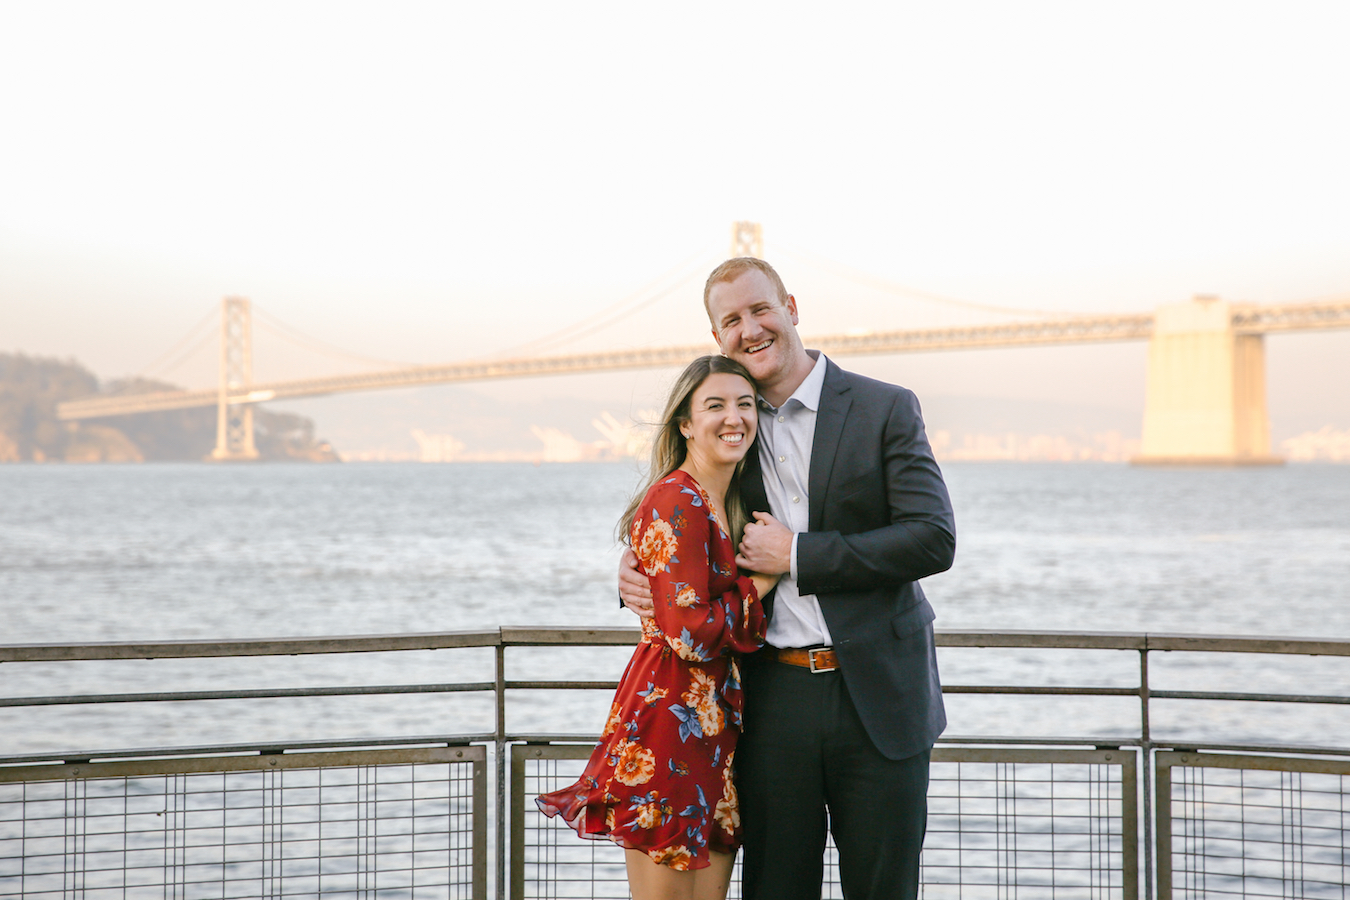 San Francisco Embarcadero + Bay Bridge Engagement Session